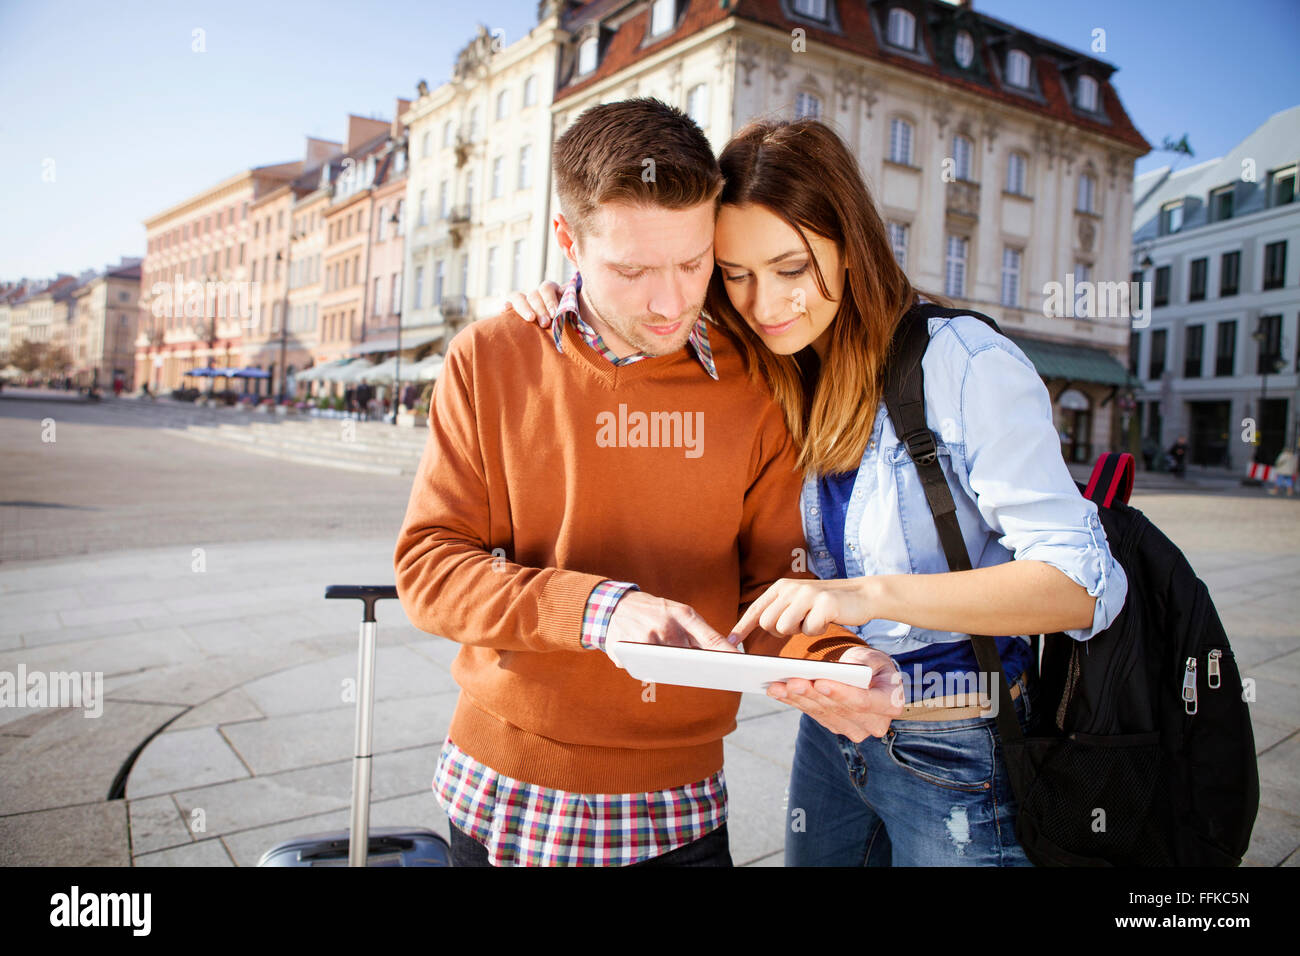 Mid adult couple on a city break using digital tablet - Stock Image